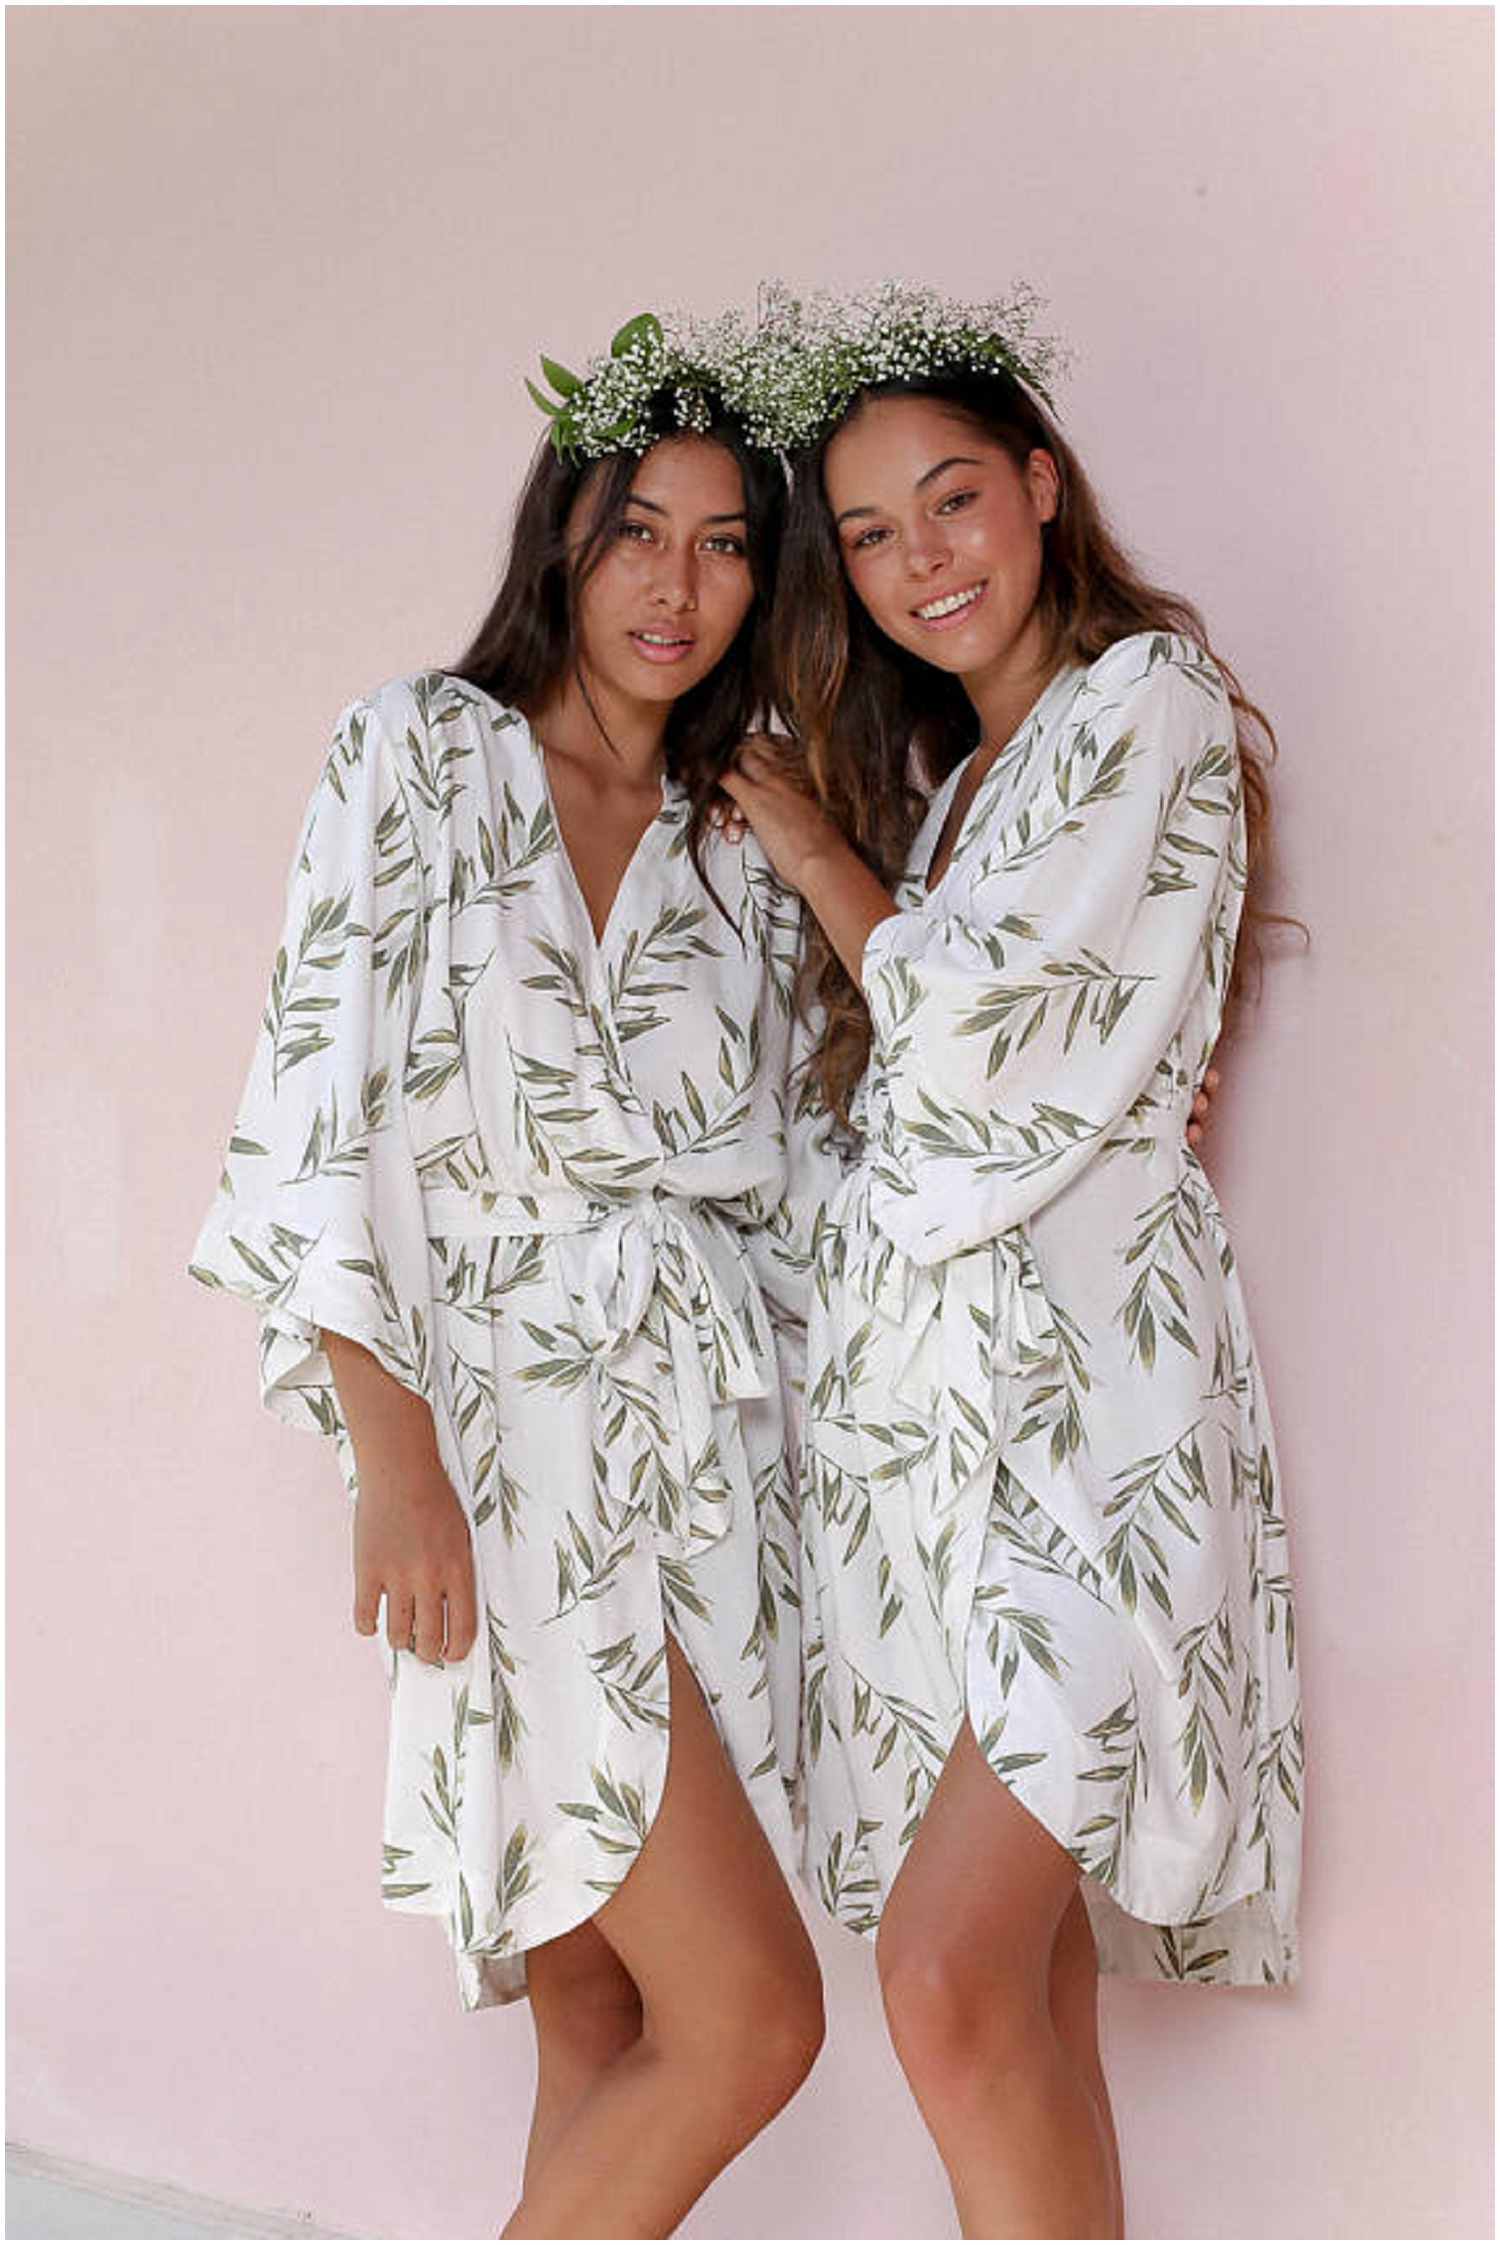 Want to win this robe?? Enter our giveaway  here!